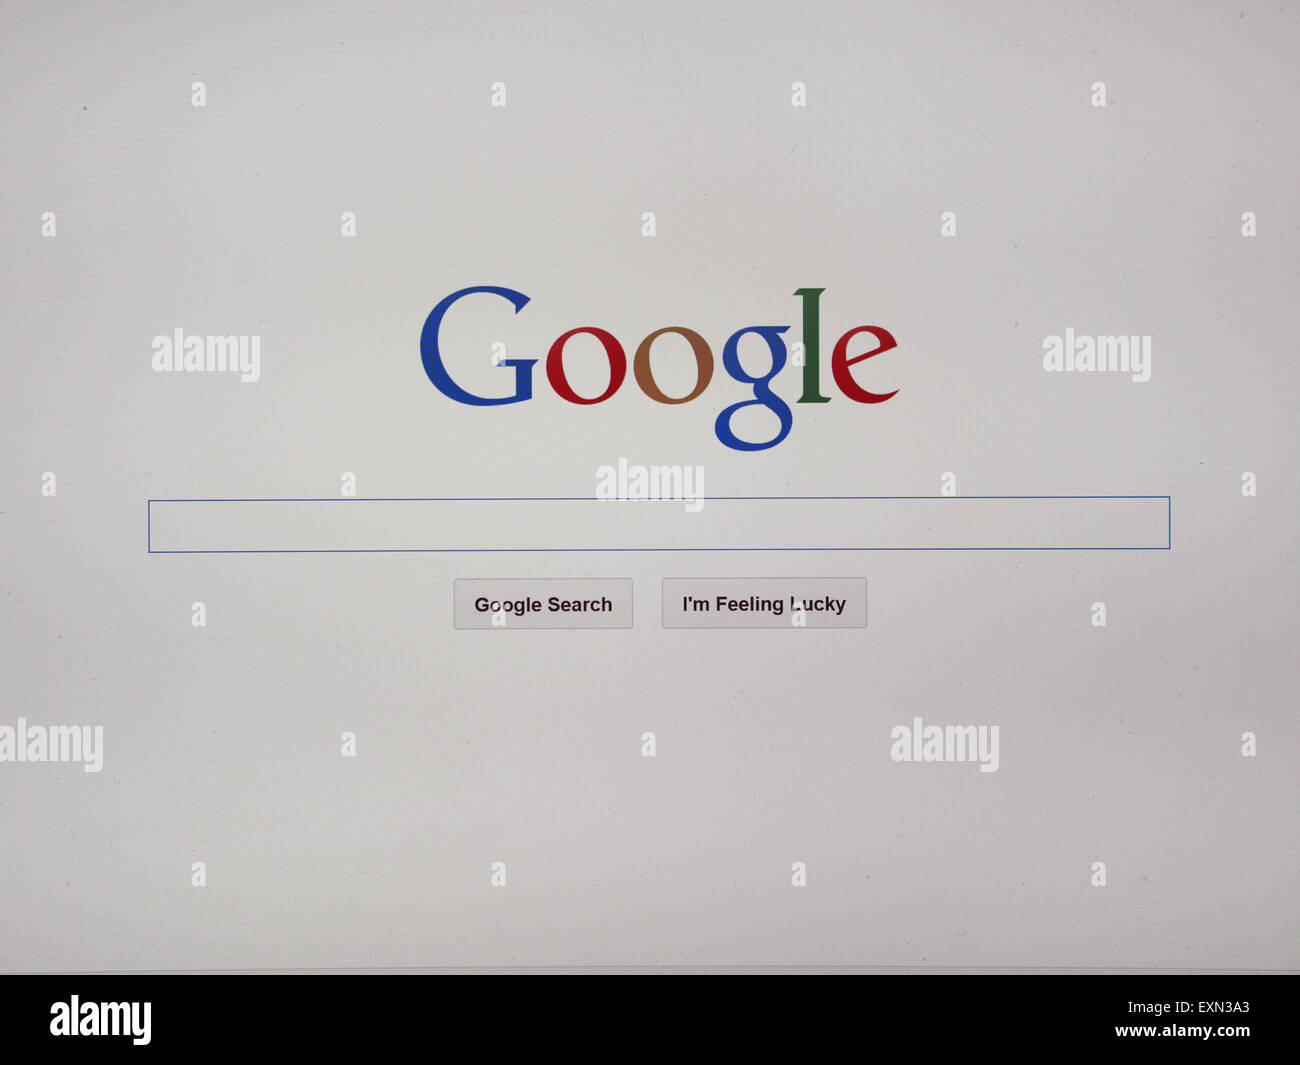 Google internet search engine home page - Stock Image